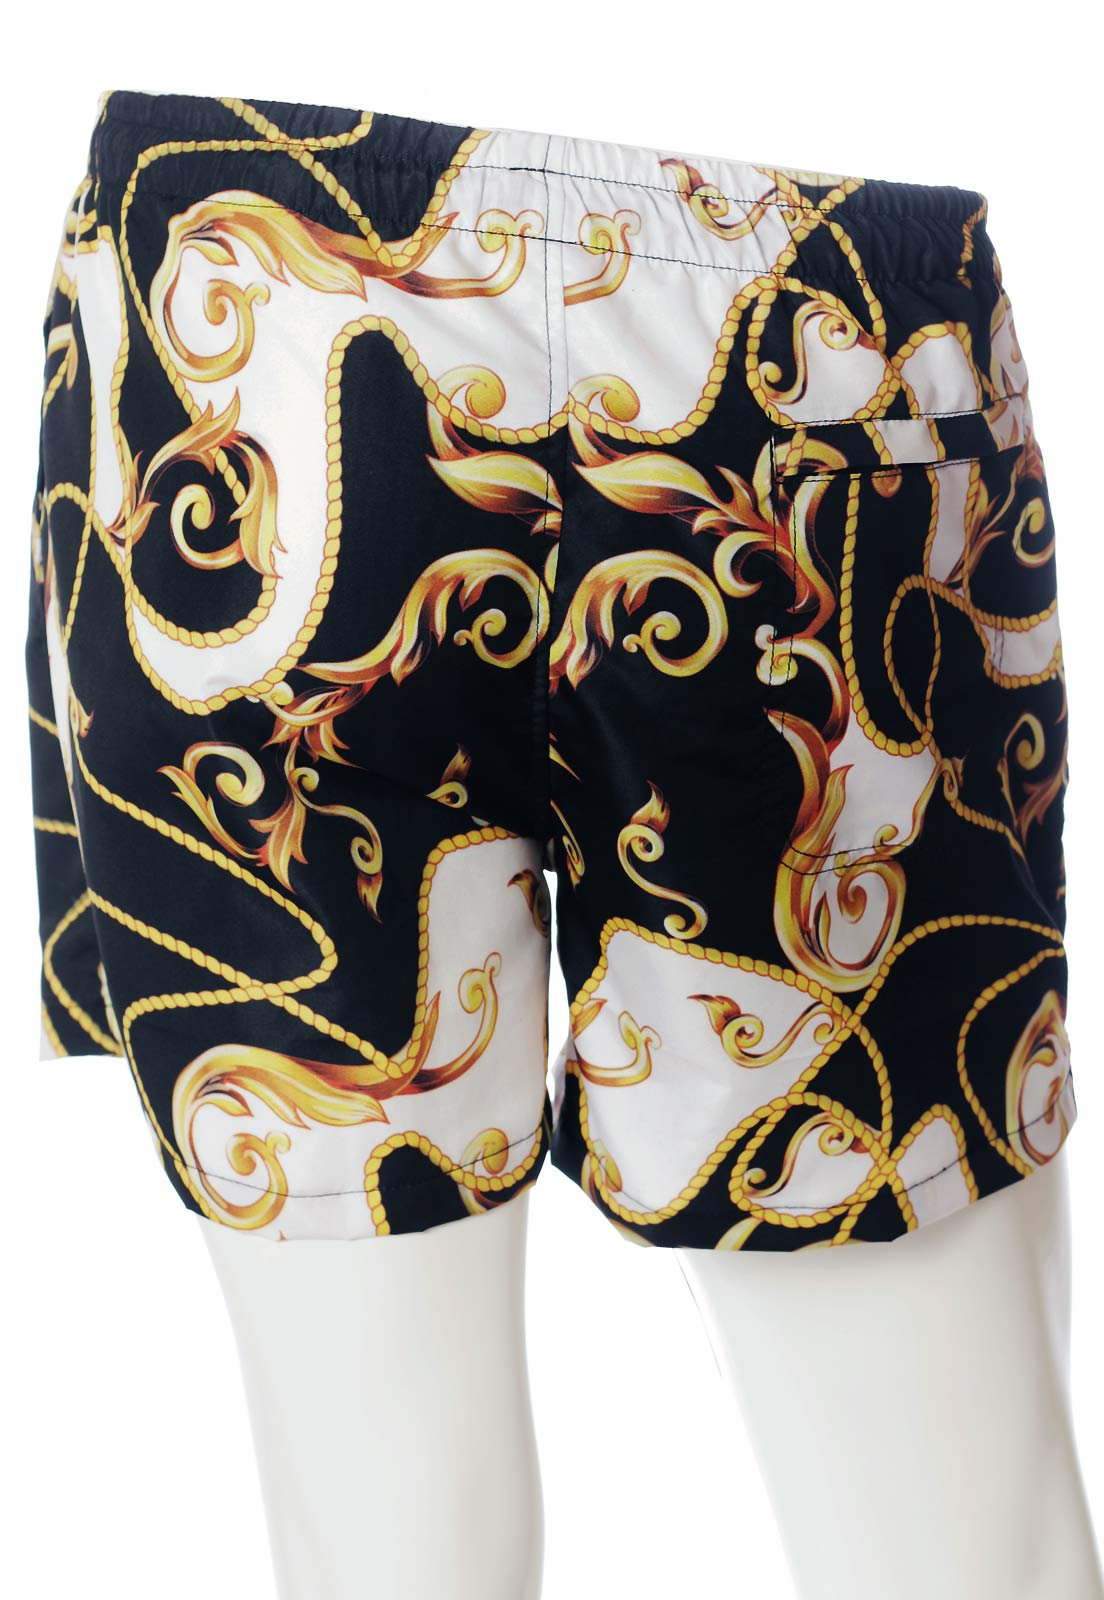 SHORTS BARROCO ESTAMPADO FULL PRINT UNISSEX WHITE-GOLD